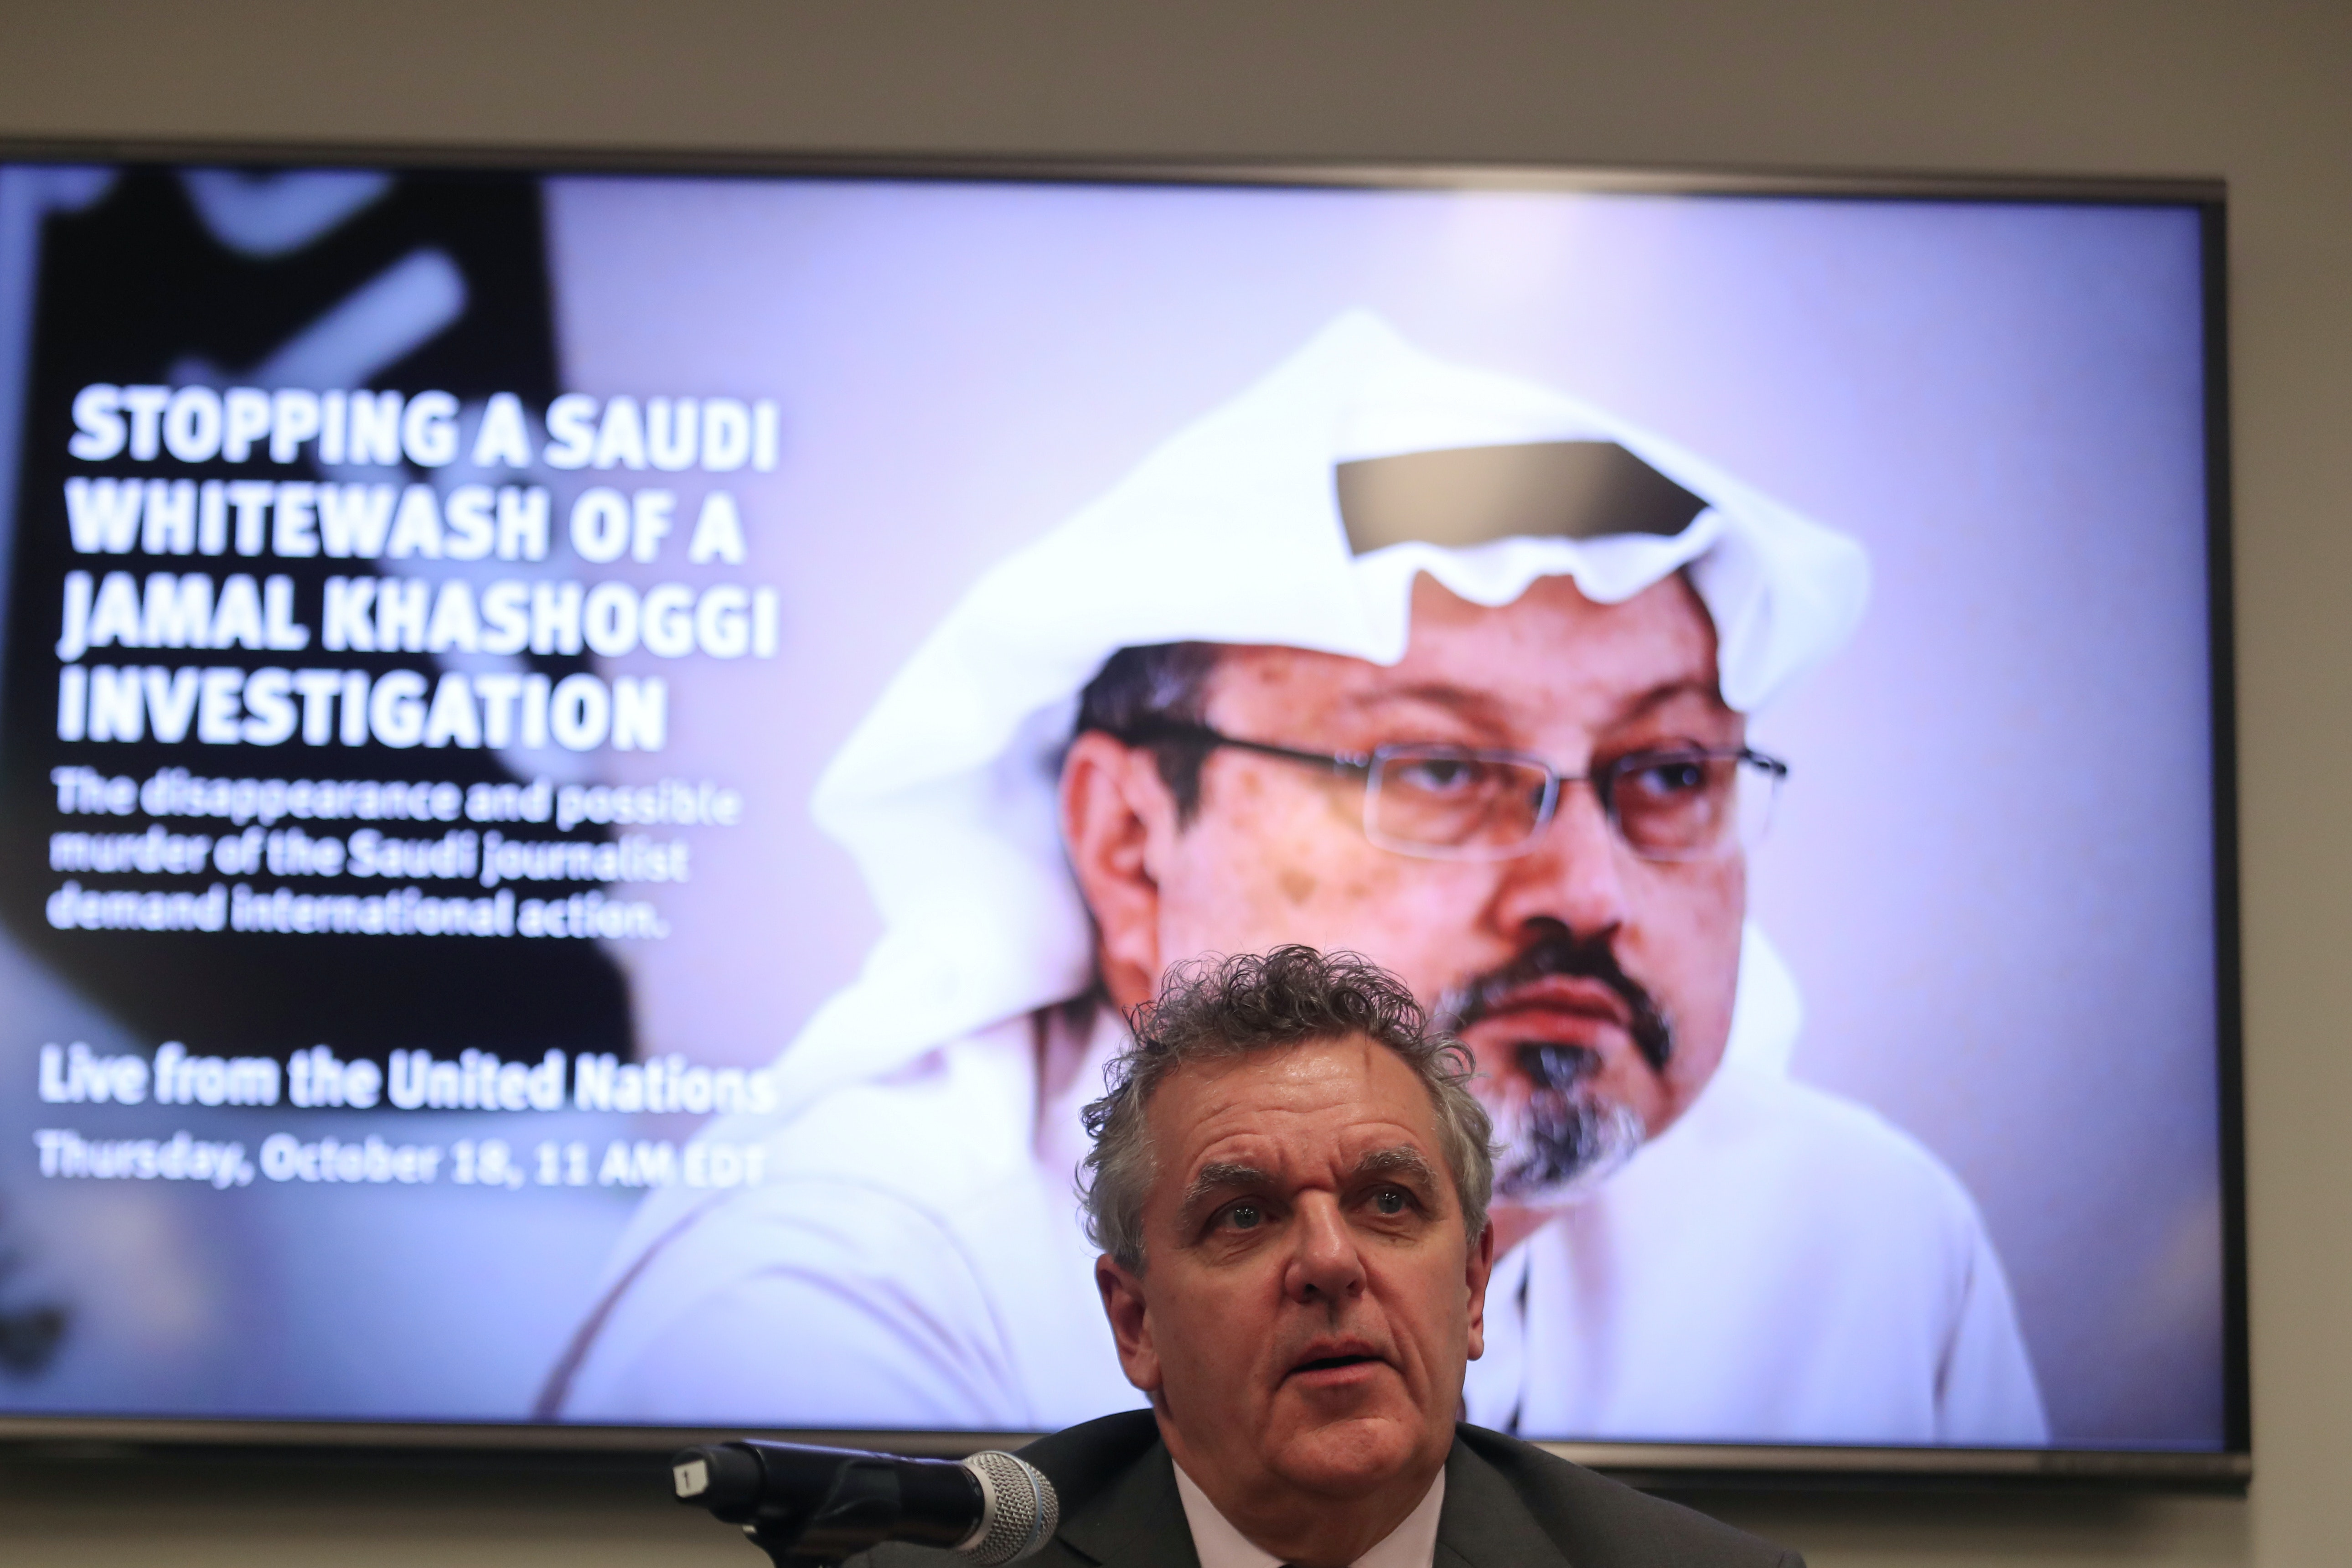 Jamal Khashoggi: Casualty of the Trump administration's disregard for democracy and civil rights in the Middle East?